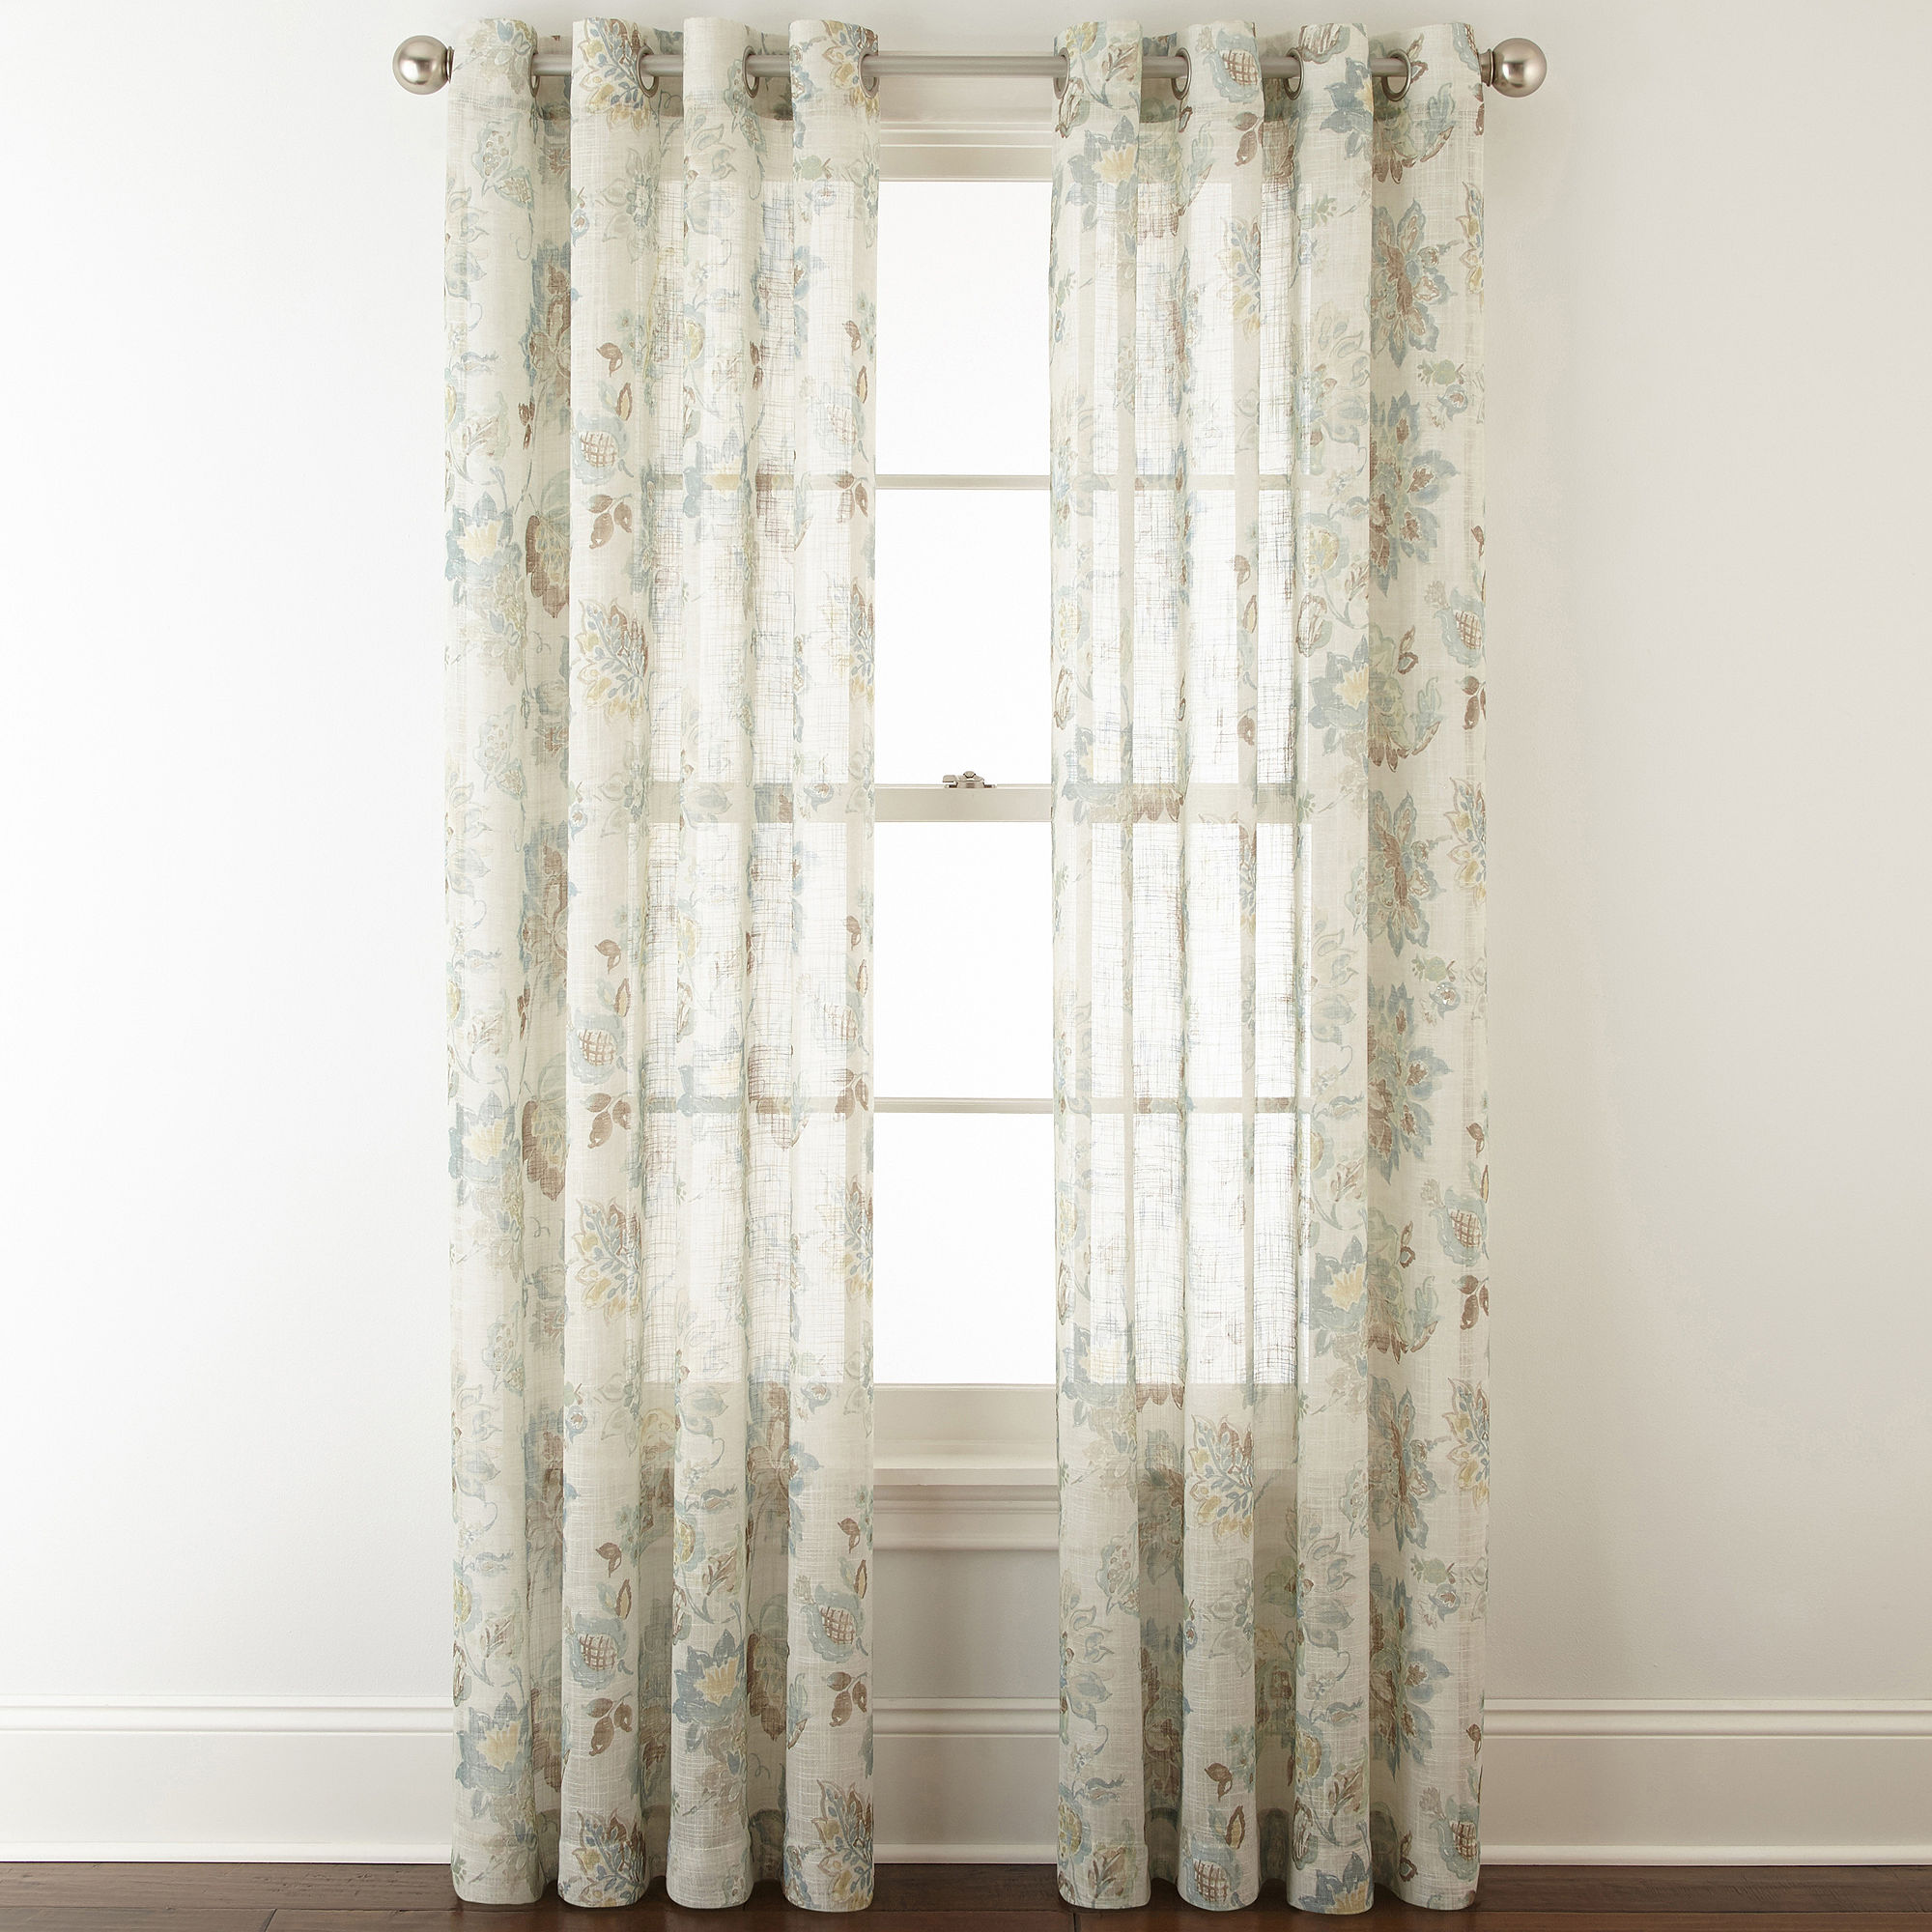 Curtains Ideas Jc Penney Curtains And Drapes Inspiring